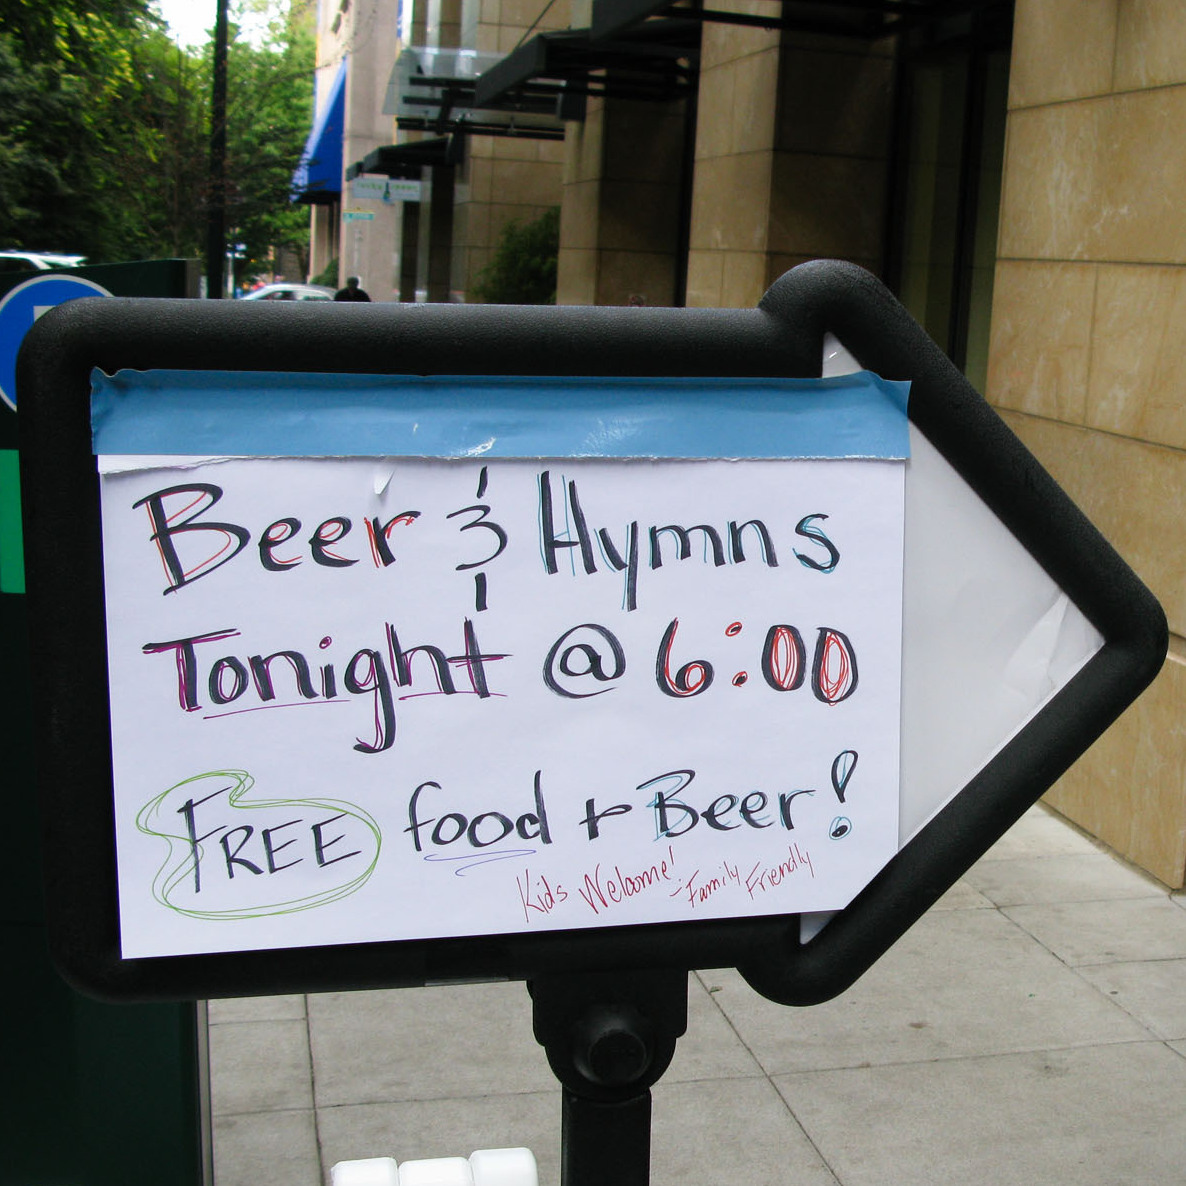 The sign for Beer & Hymns at First Christian Church in downtown Portland, Ore.